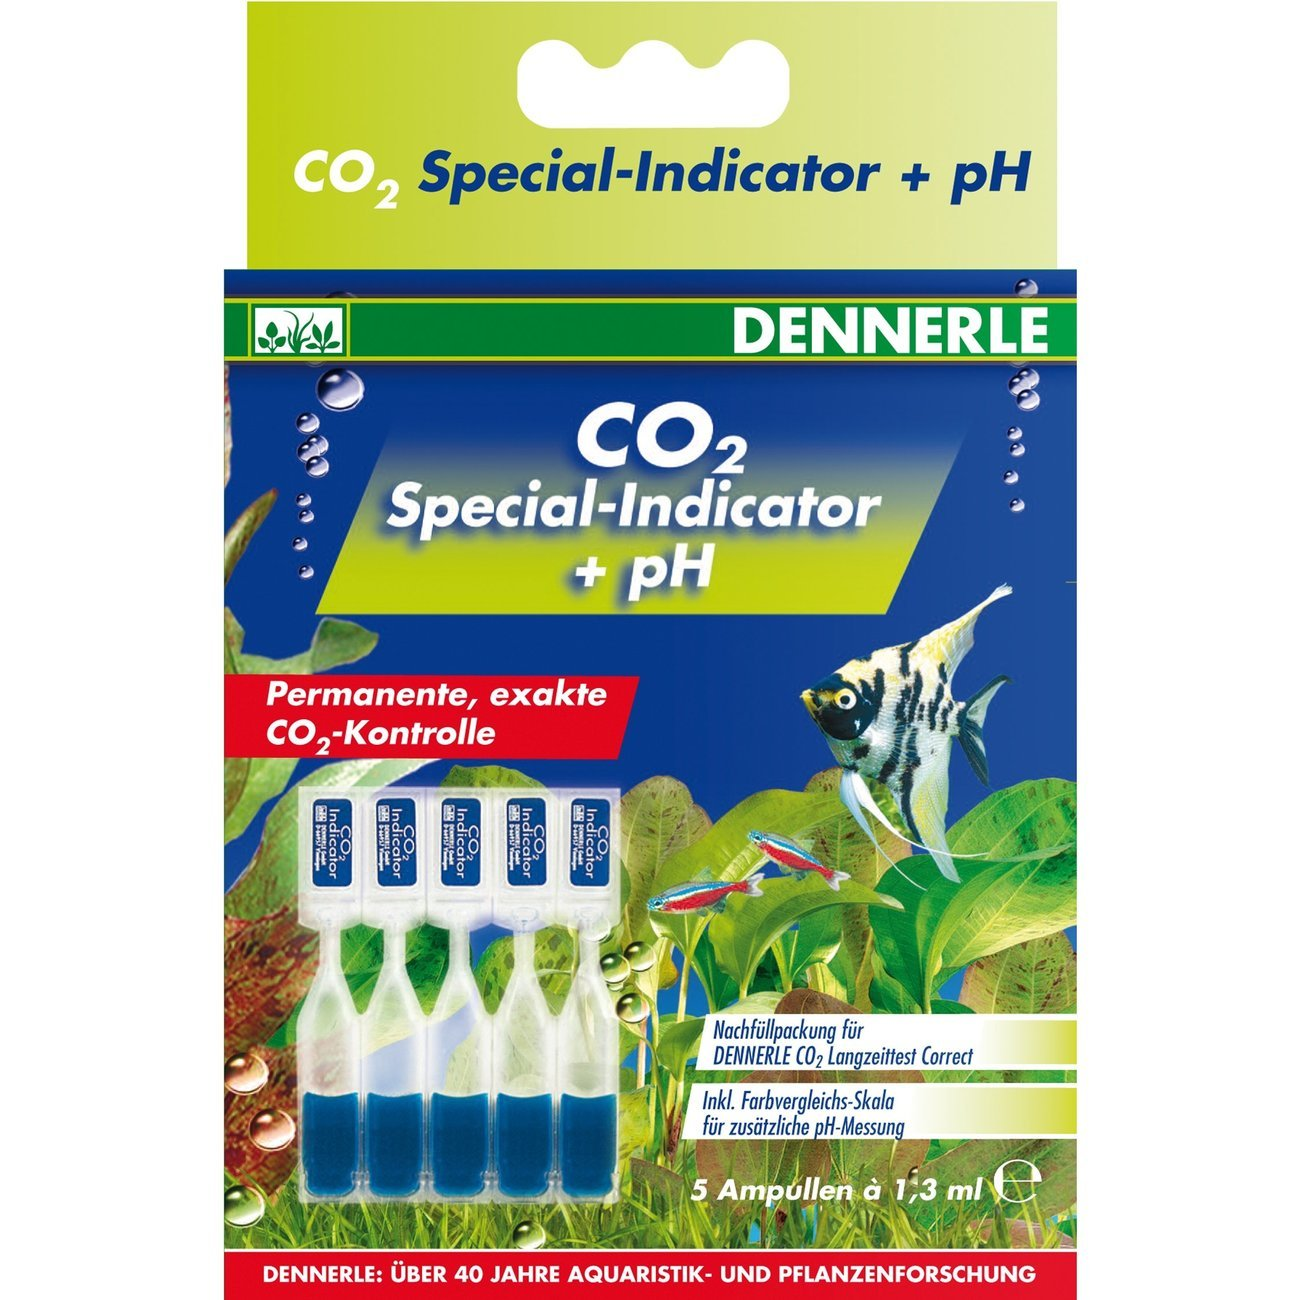 Dennerle CO2 Special-Indicator